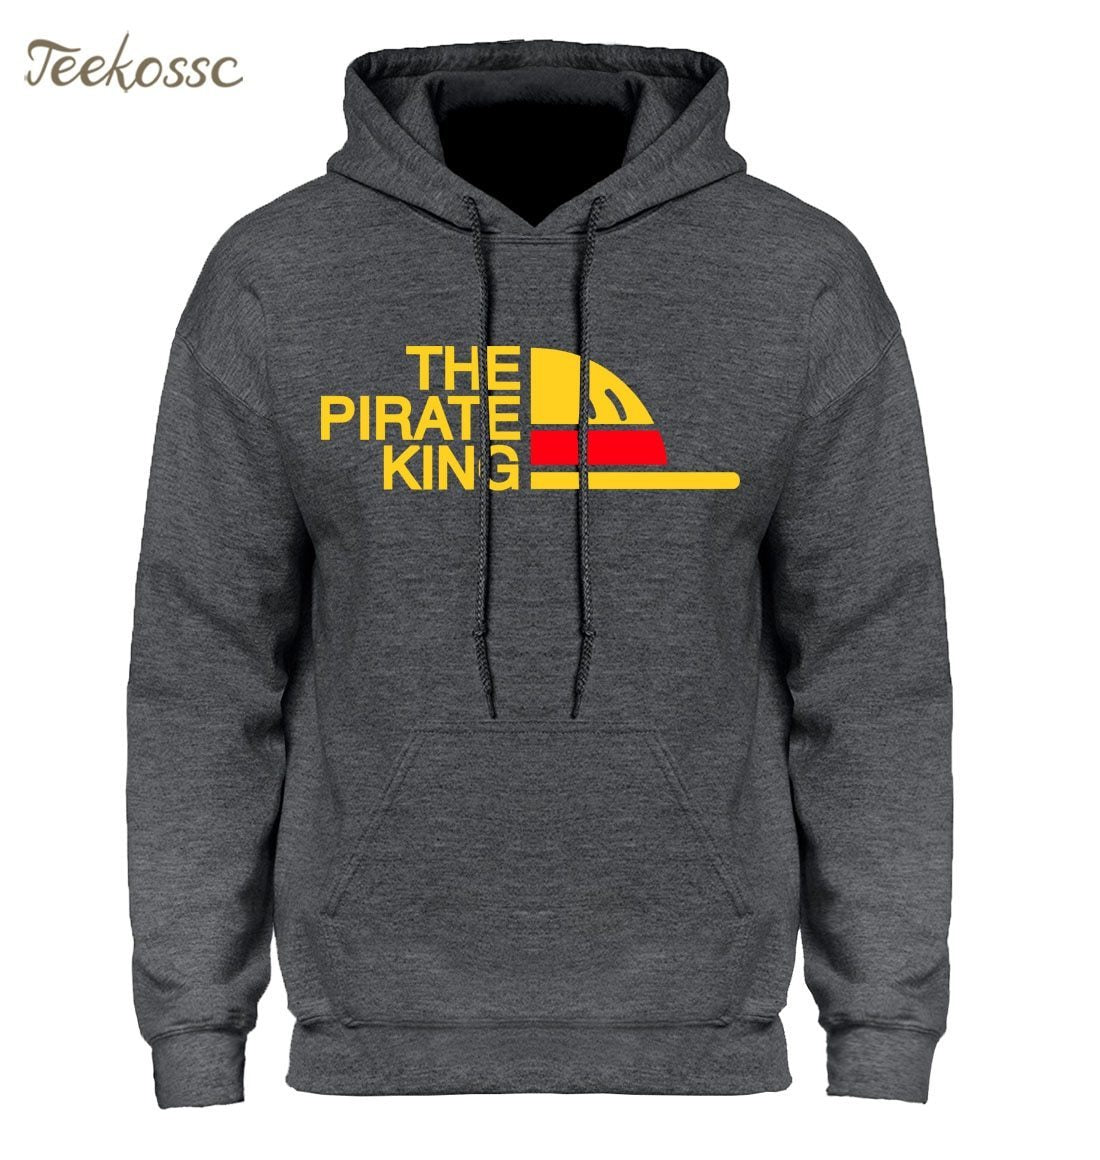 One Piece Hoodie Men Japanese Anime Hoodies Mens The Pirate King Luffydresskily-dresskily